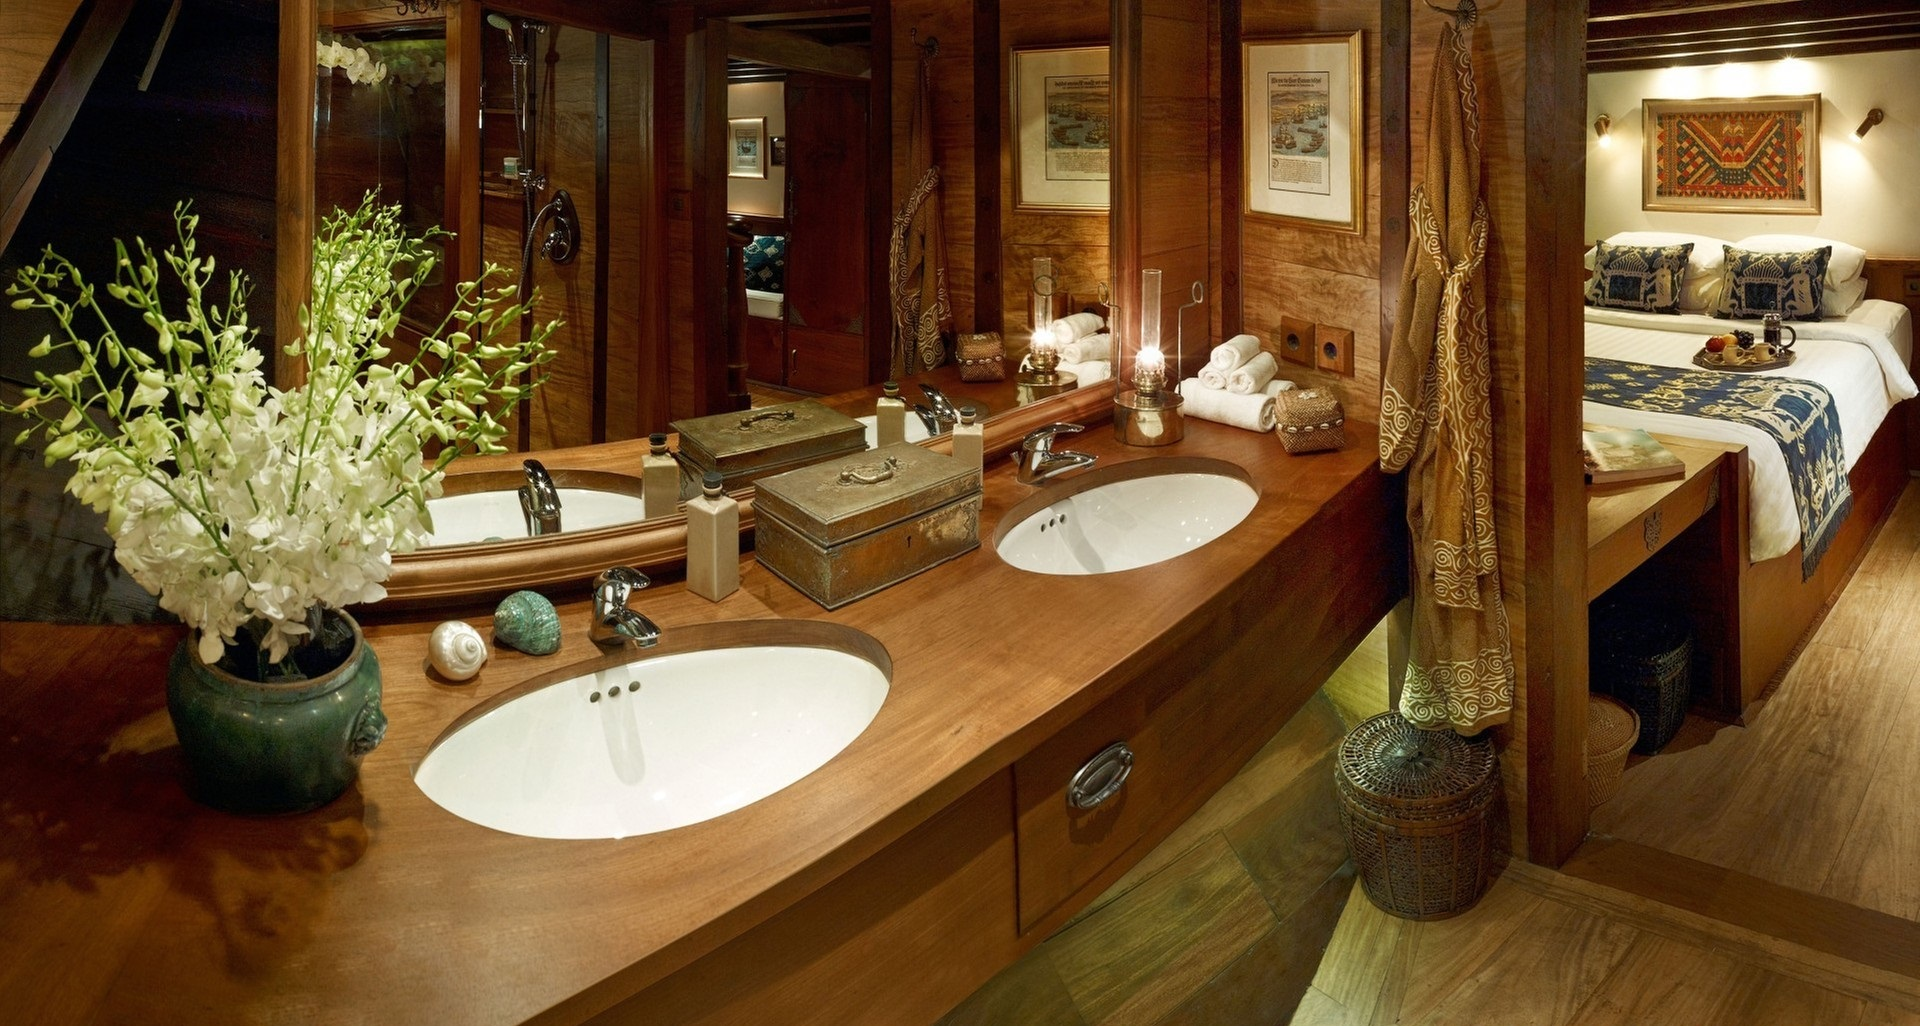 SI DATU BUA - Ensuite Bathroom